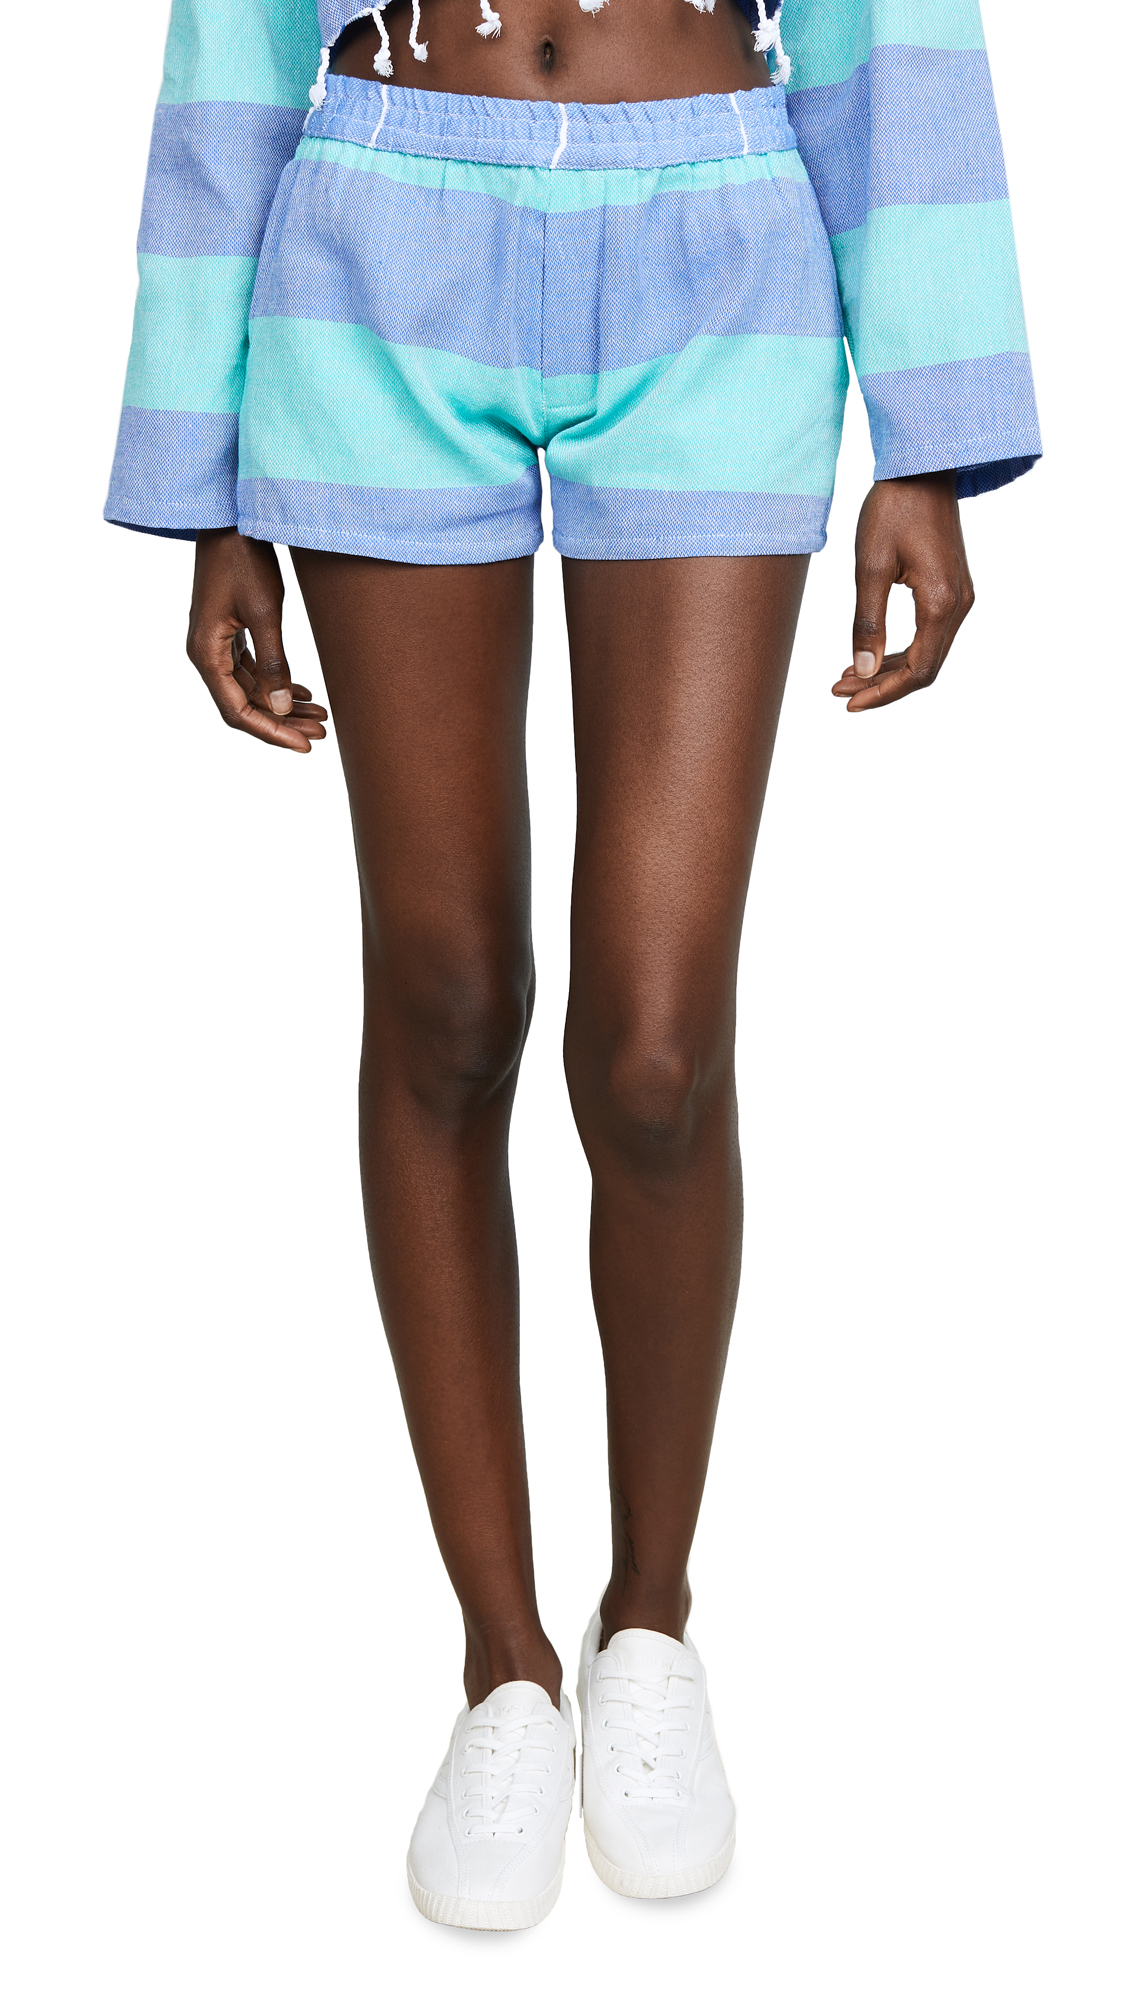 Paradised Surf Shorts In Blue/Mint